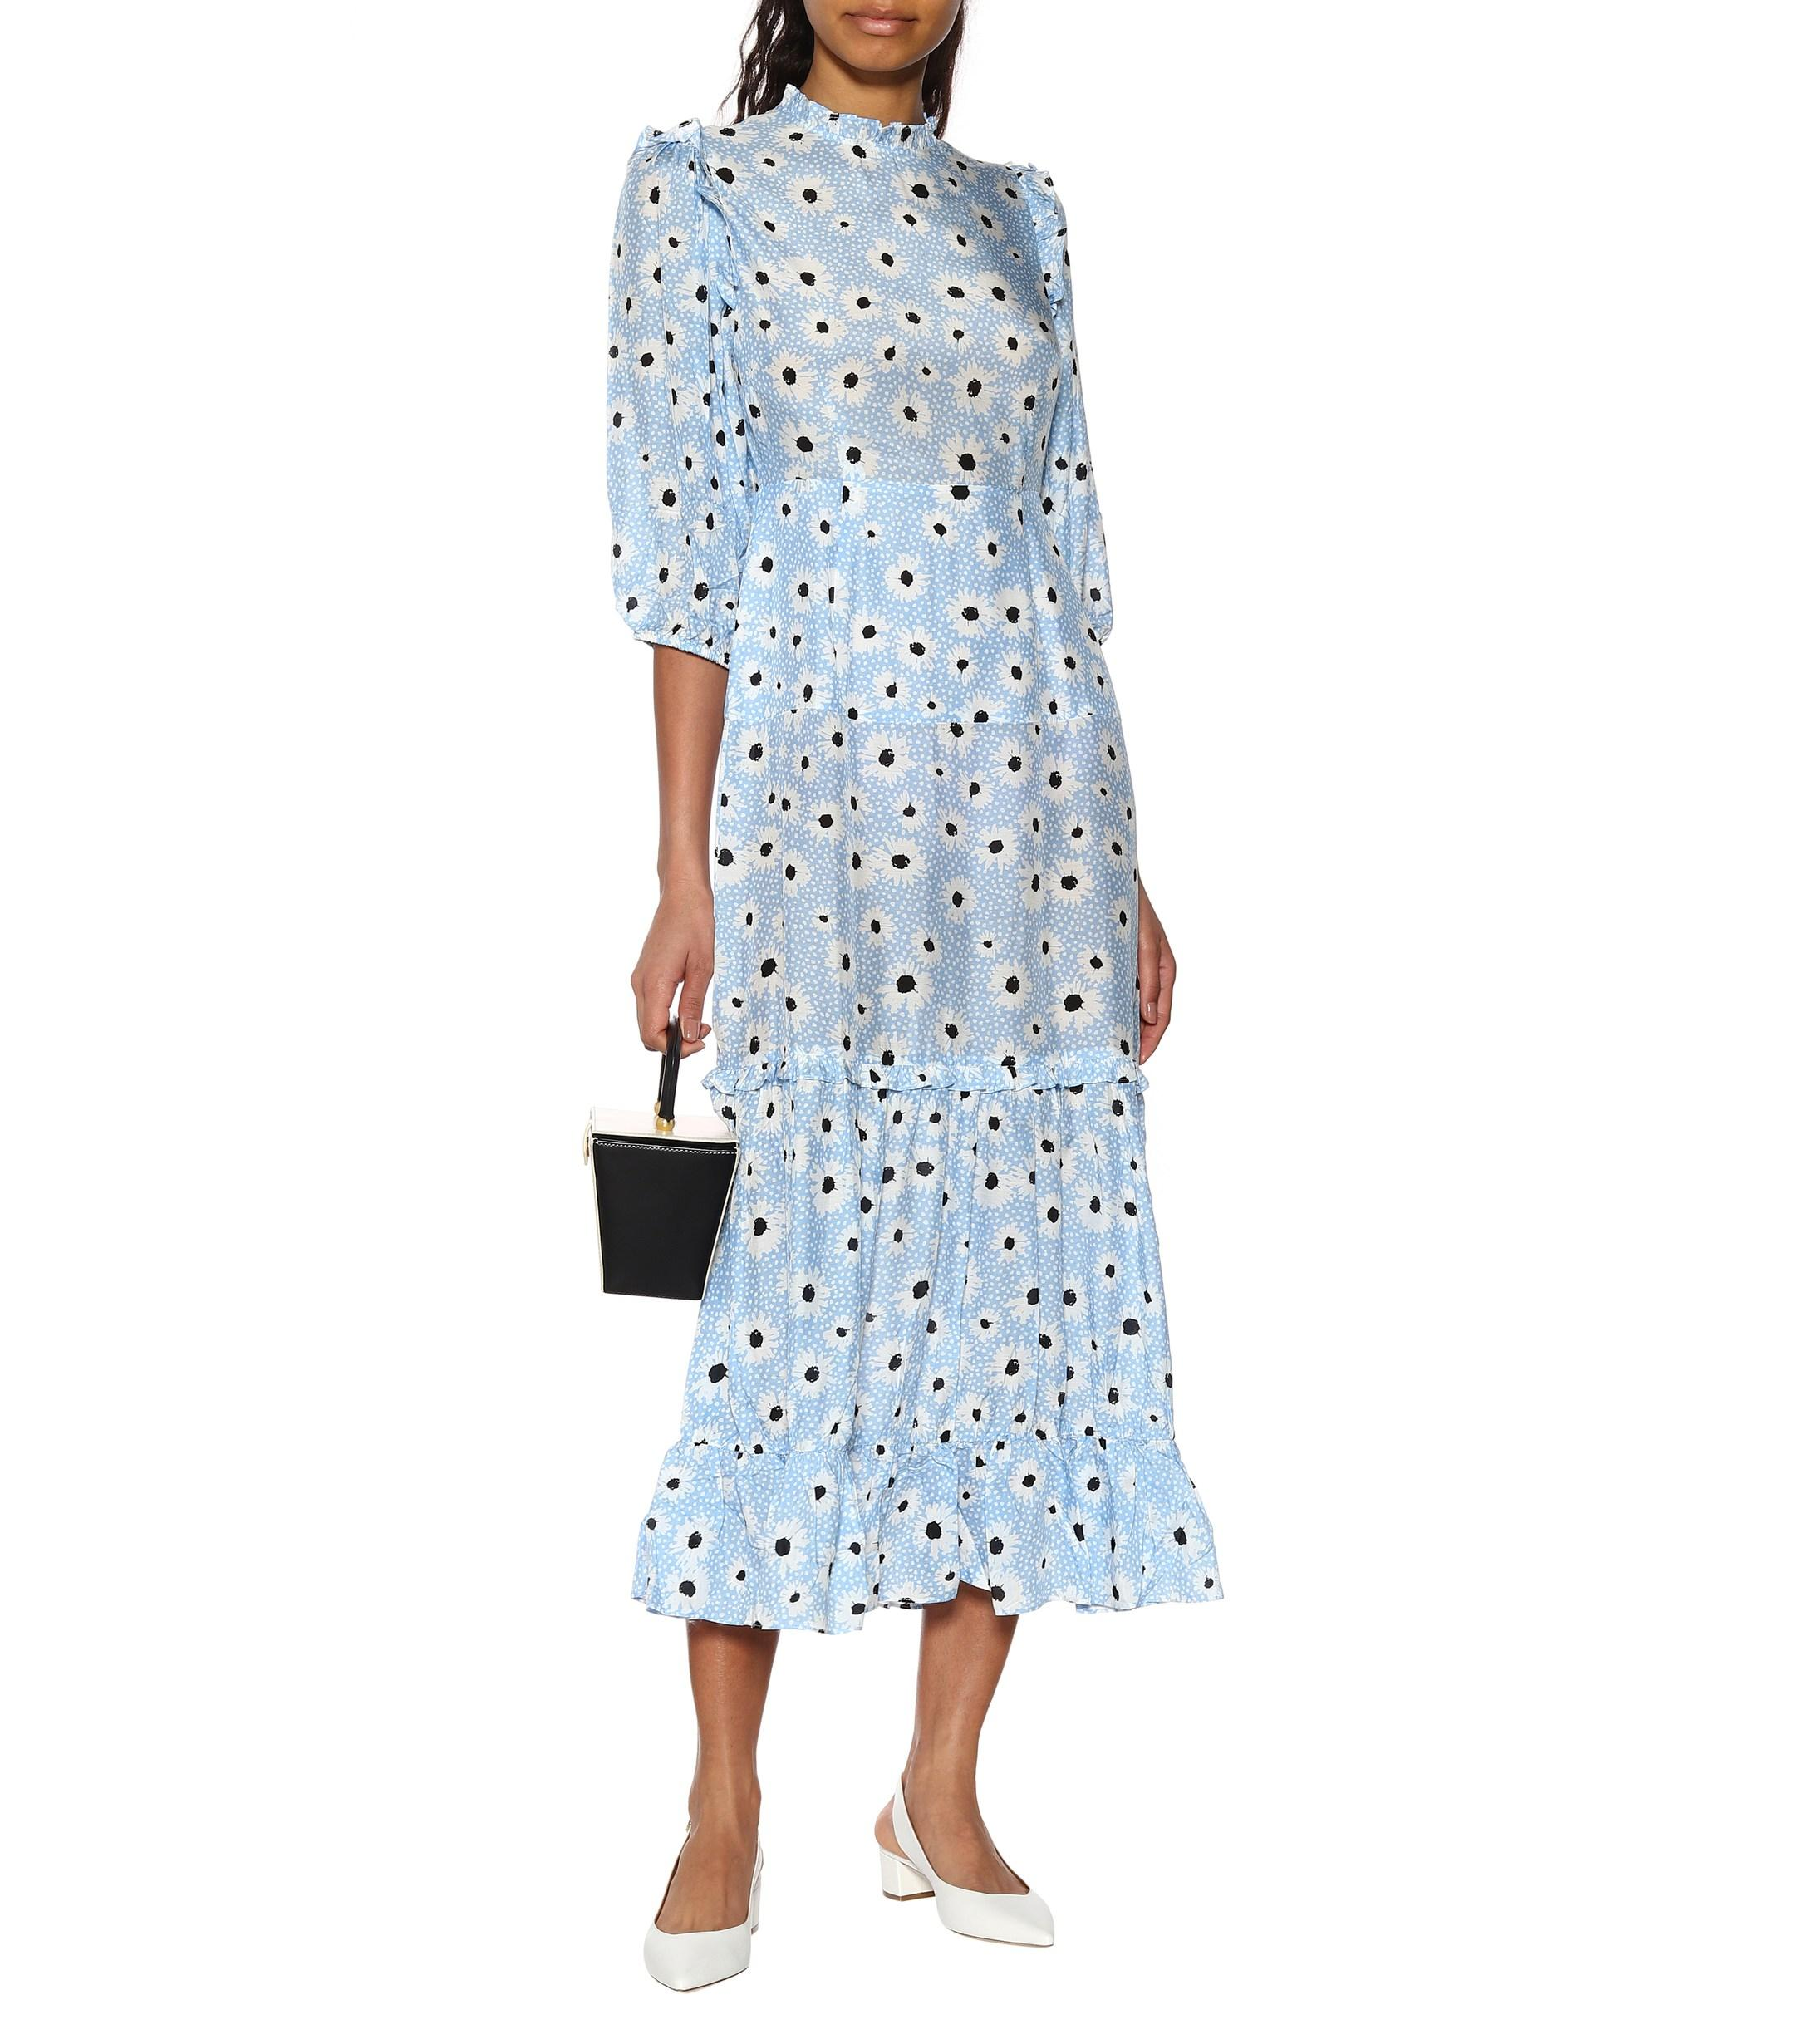 a4182c35589 Lyst - RIXO London Monet Floral Cotton And Silk Dress in Blue